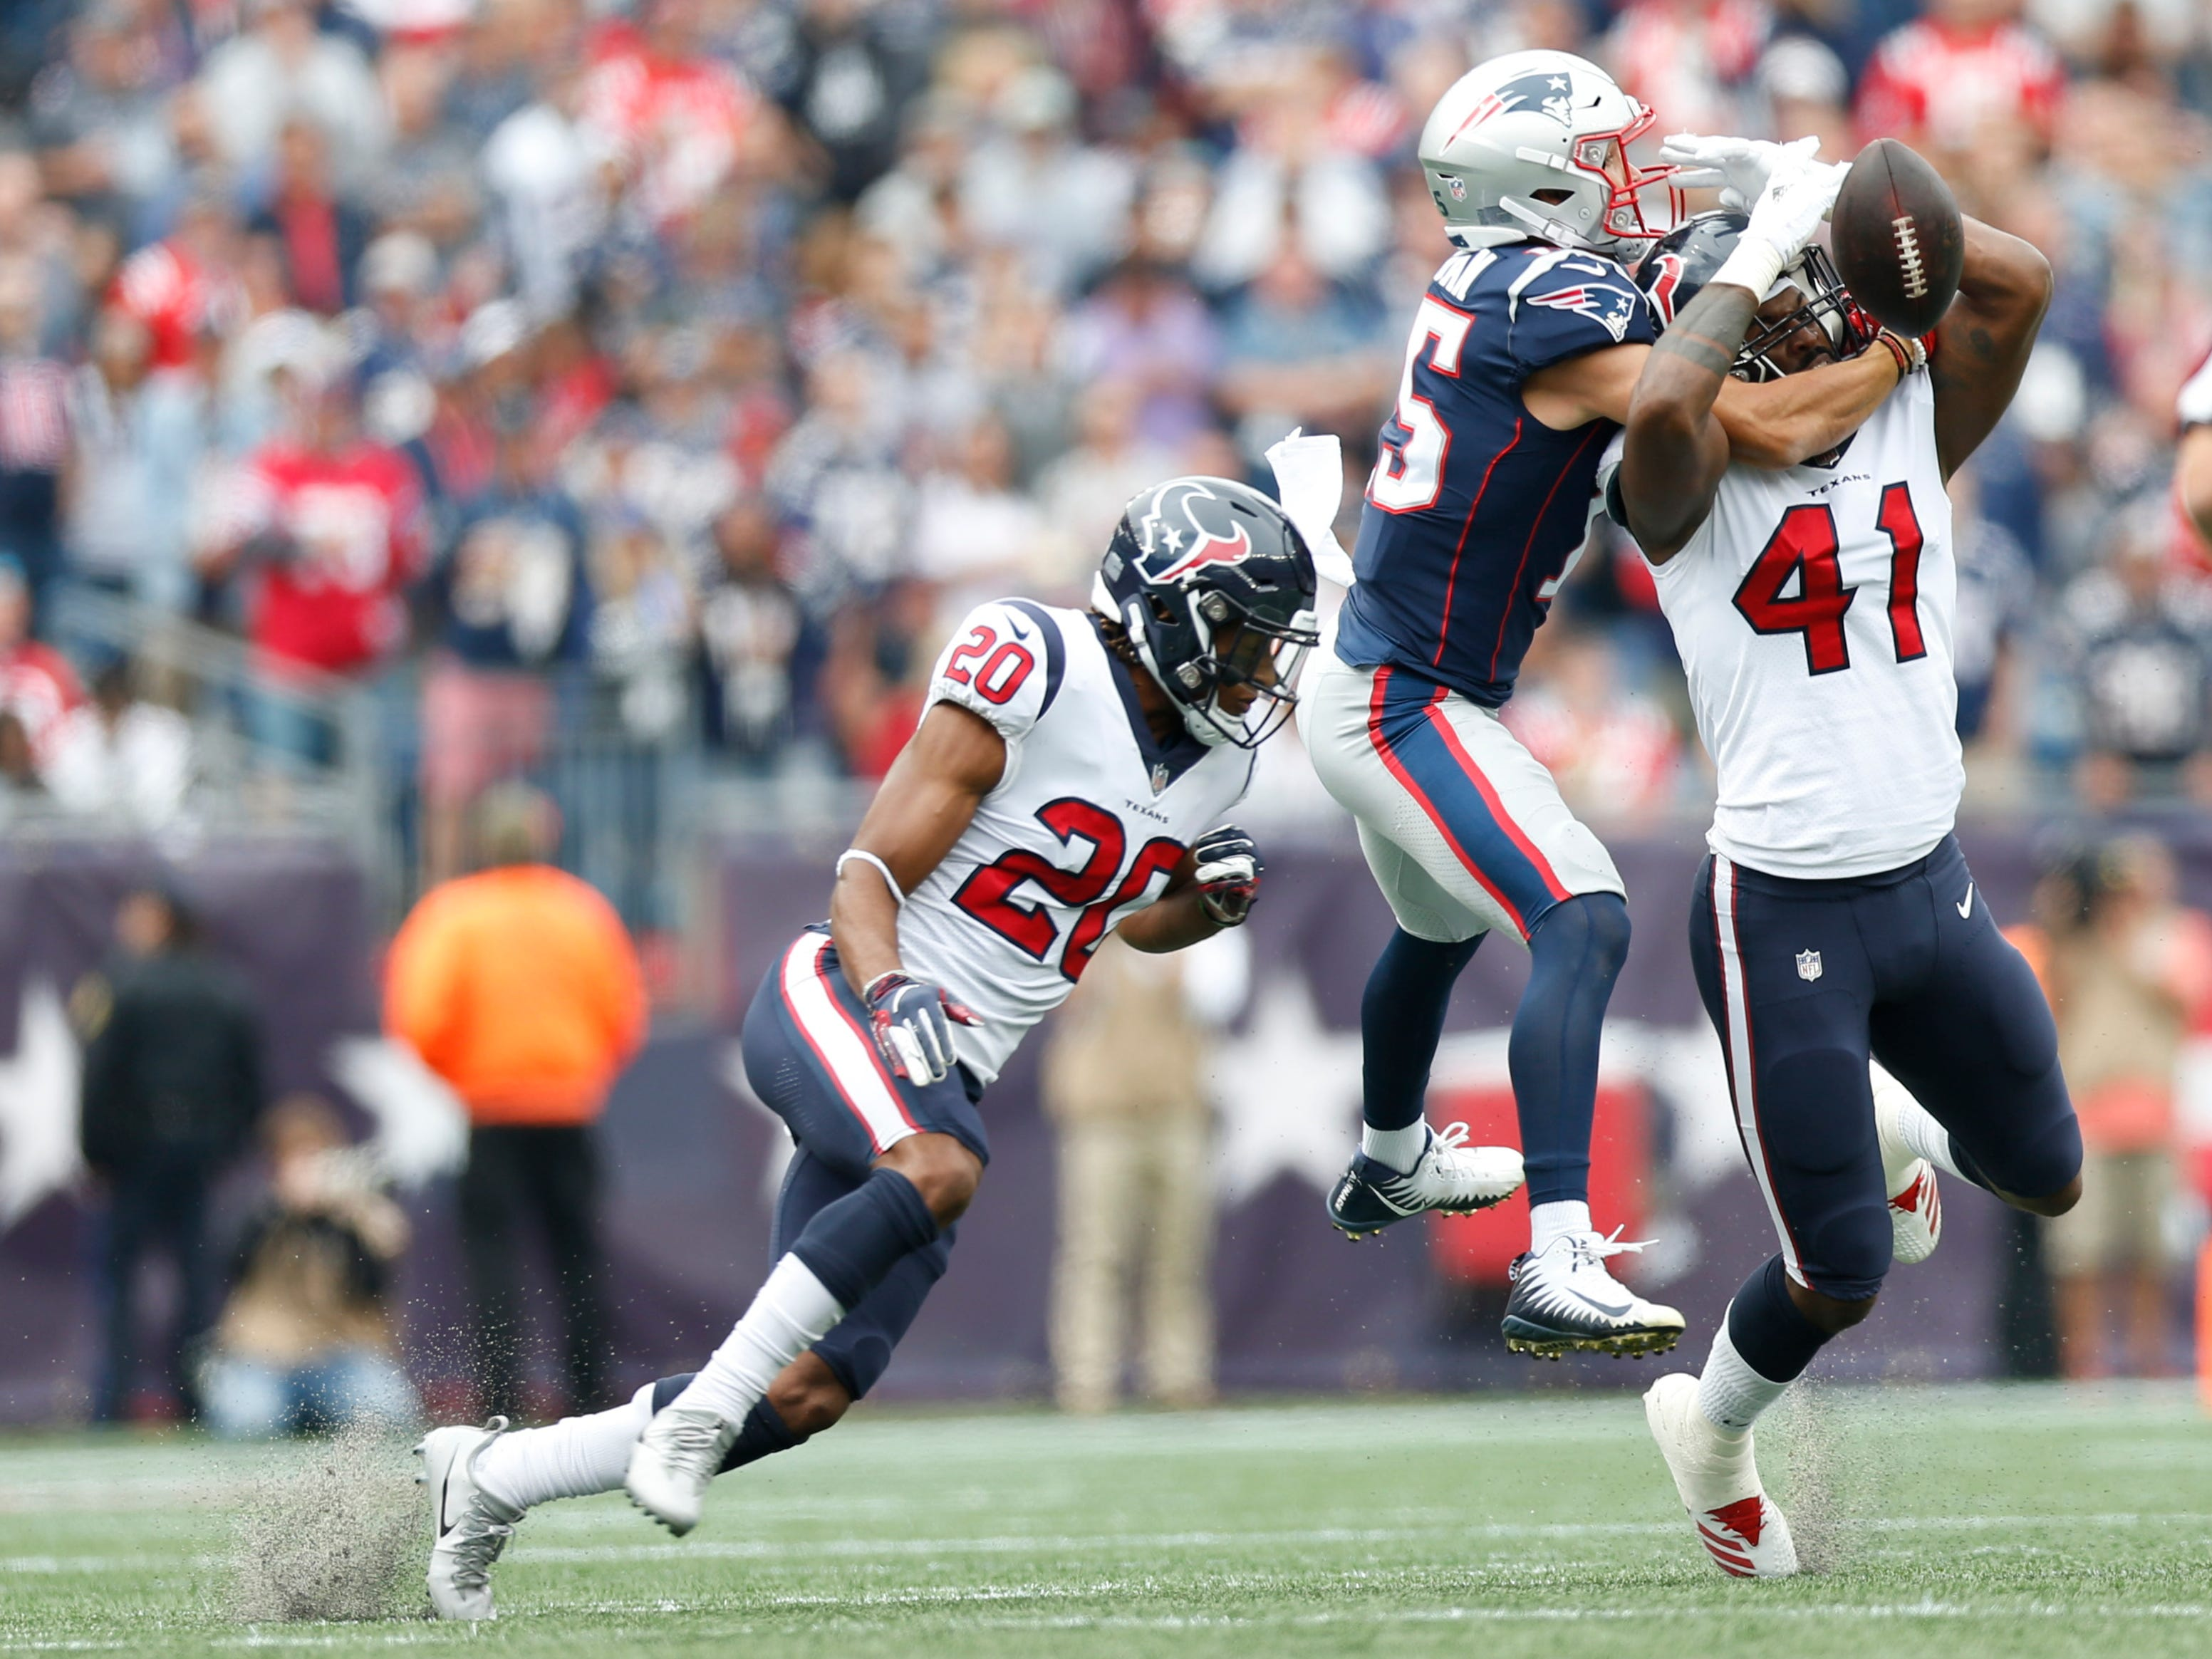 Houston Texans linebacker Zach Cunningham breaks up a pass intended for New England Patriots wide receiver Chris Hogan with the help of defensive back Justin Reid during the second quarter at Gillette Stadium.